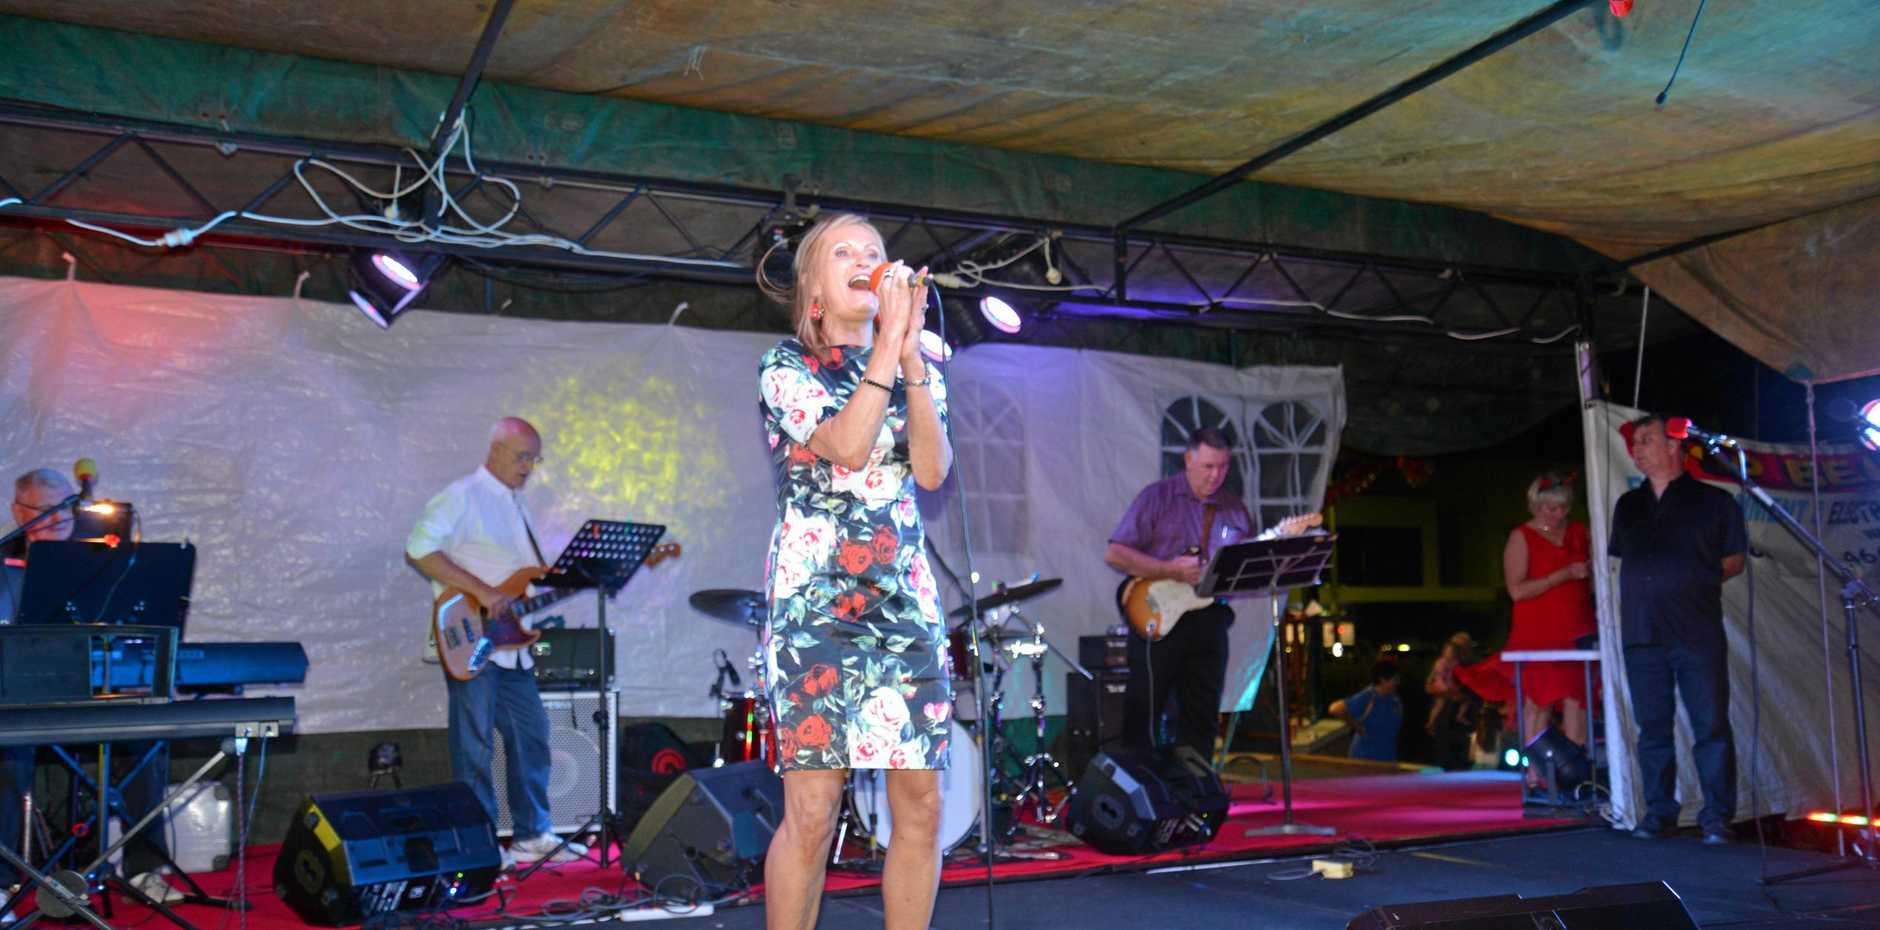 SPREADING CHEER: Erin Hilton performs at Carols in the Park, which draws thousands of people each year.